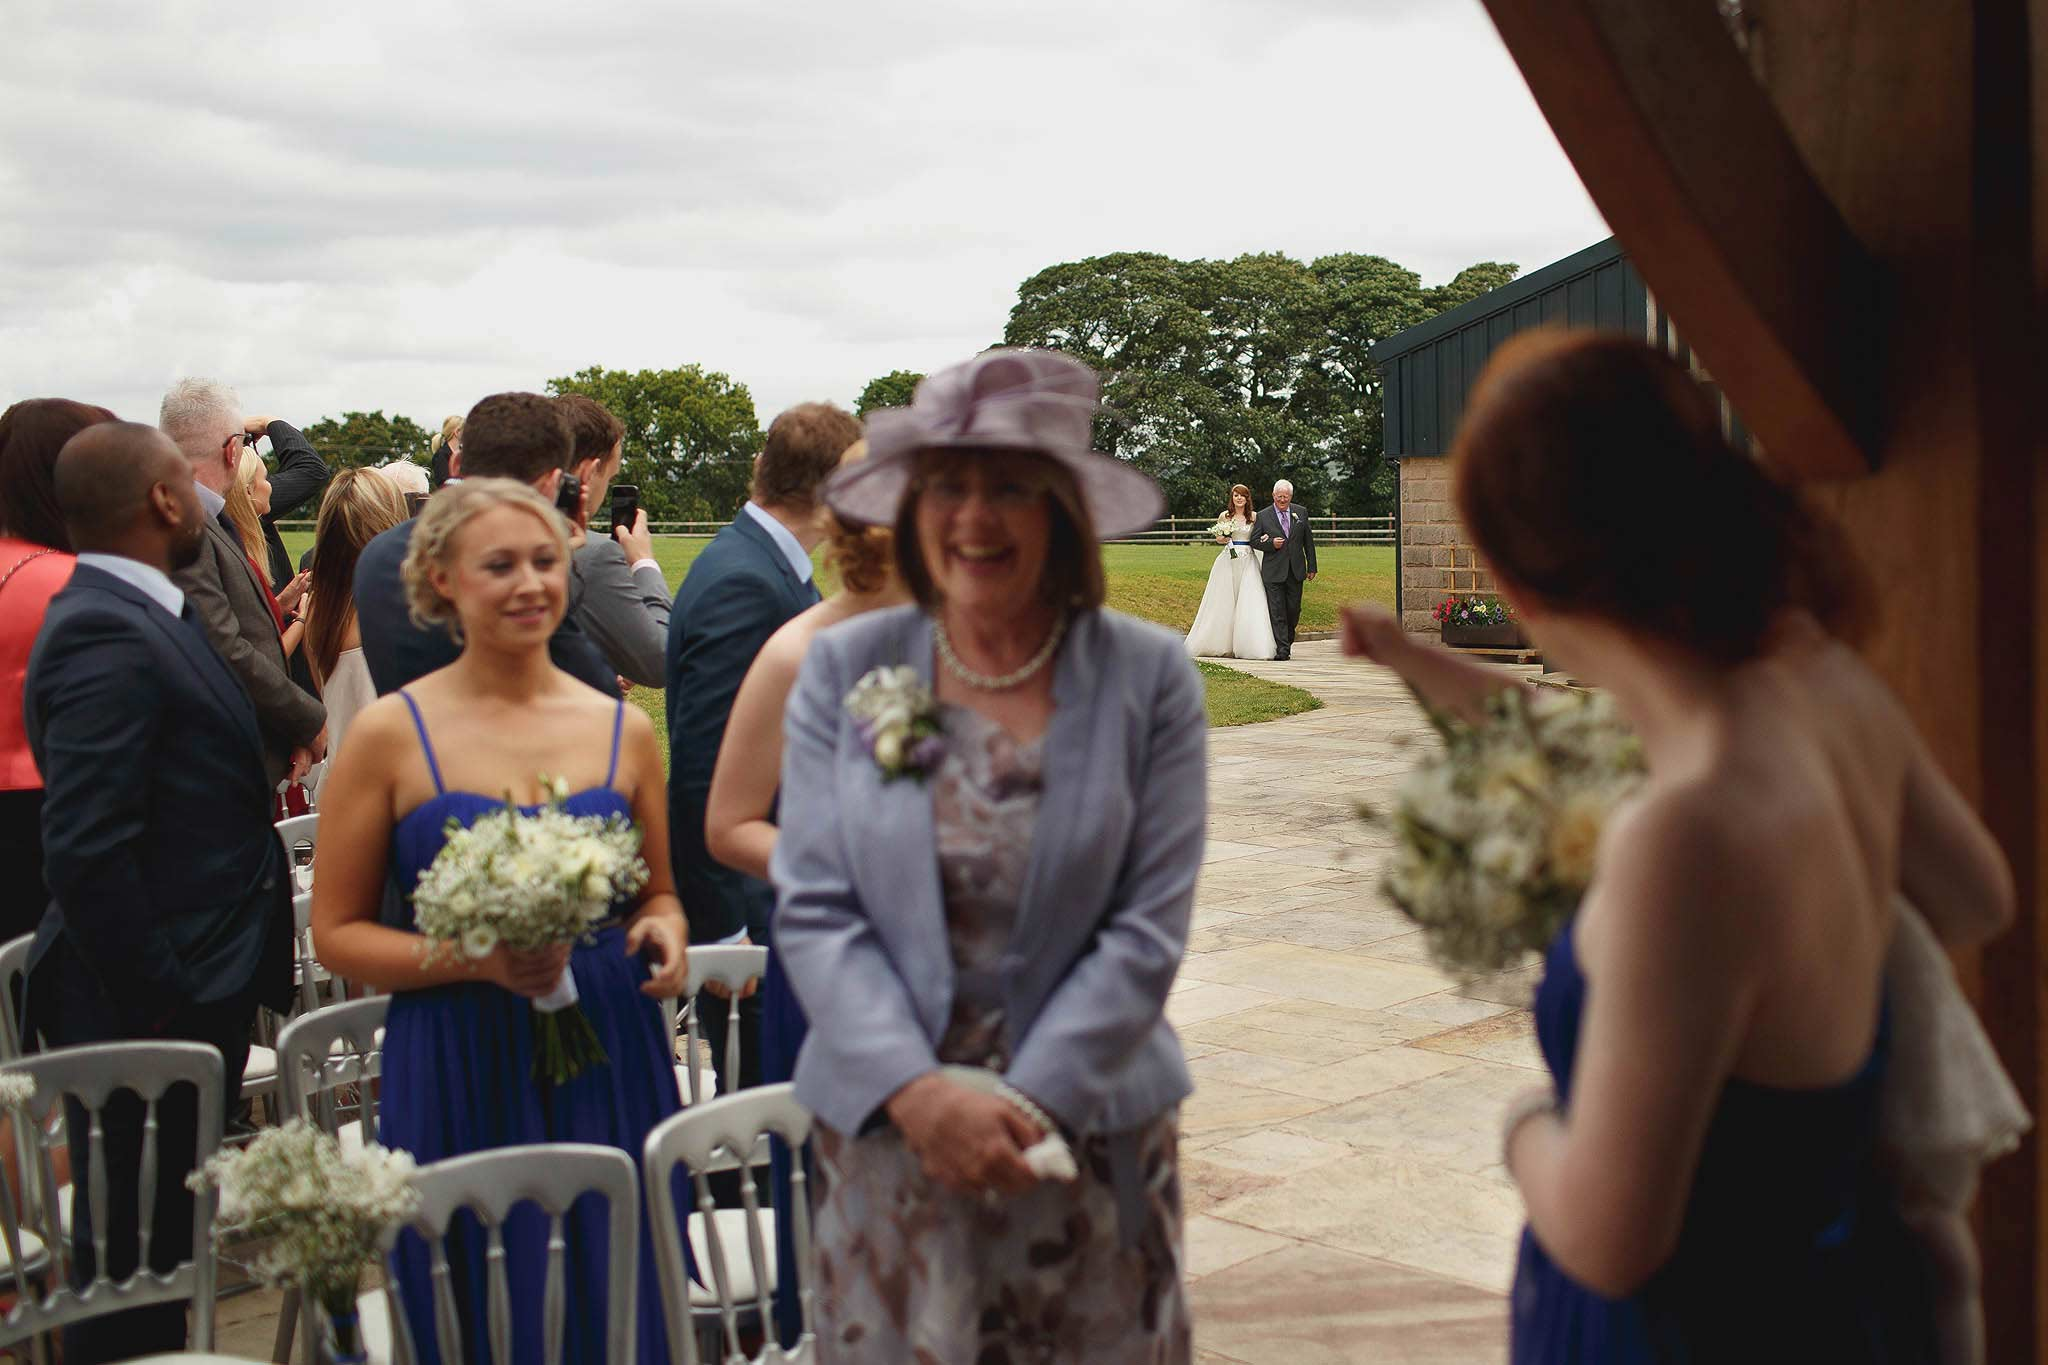 bride walking down the aisle at outdoor wedding ceremony at Heaton House Farm